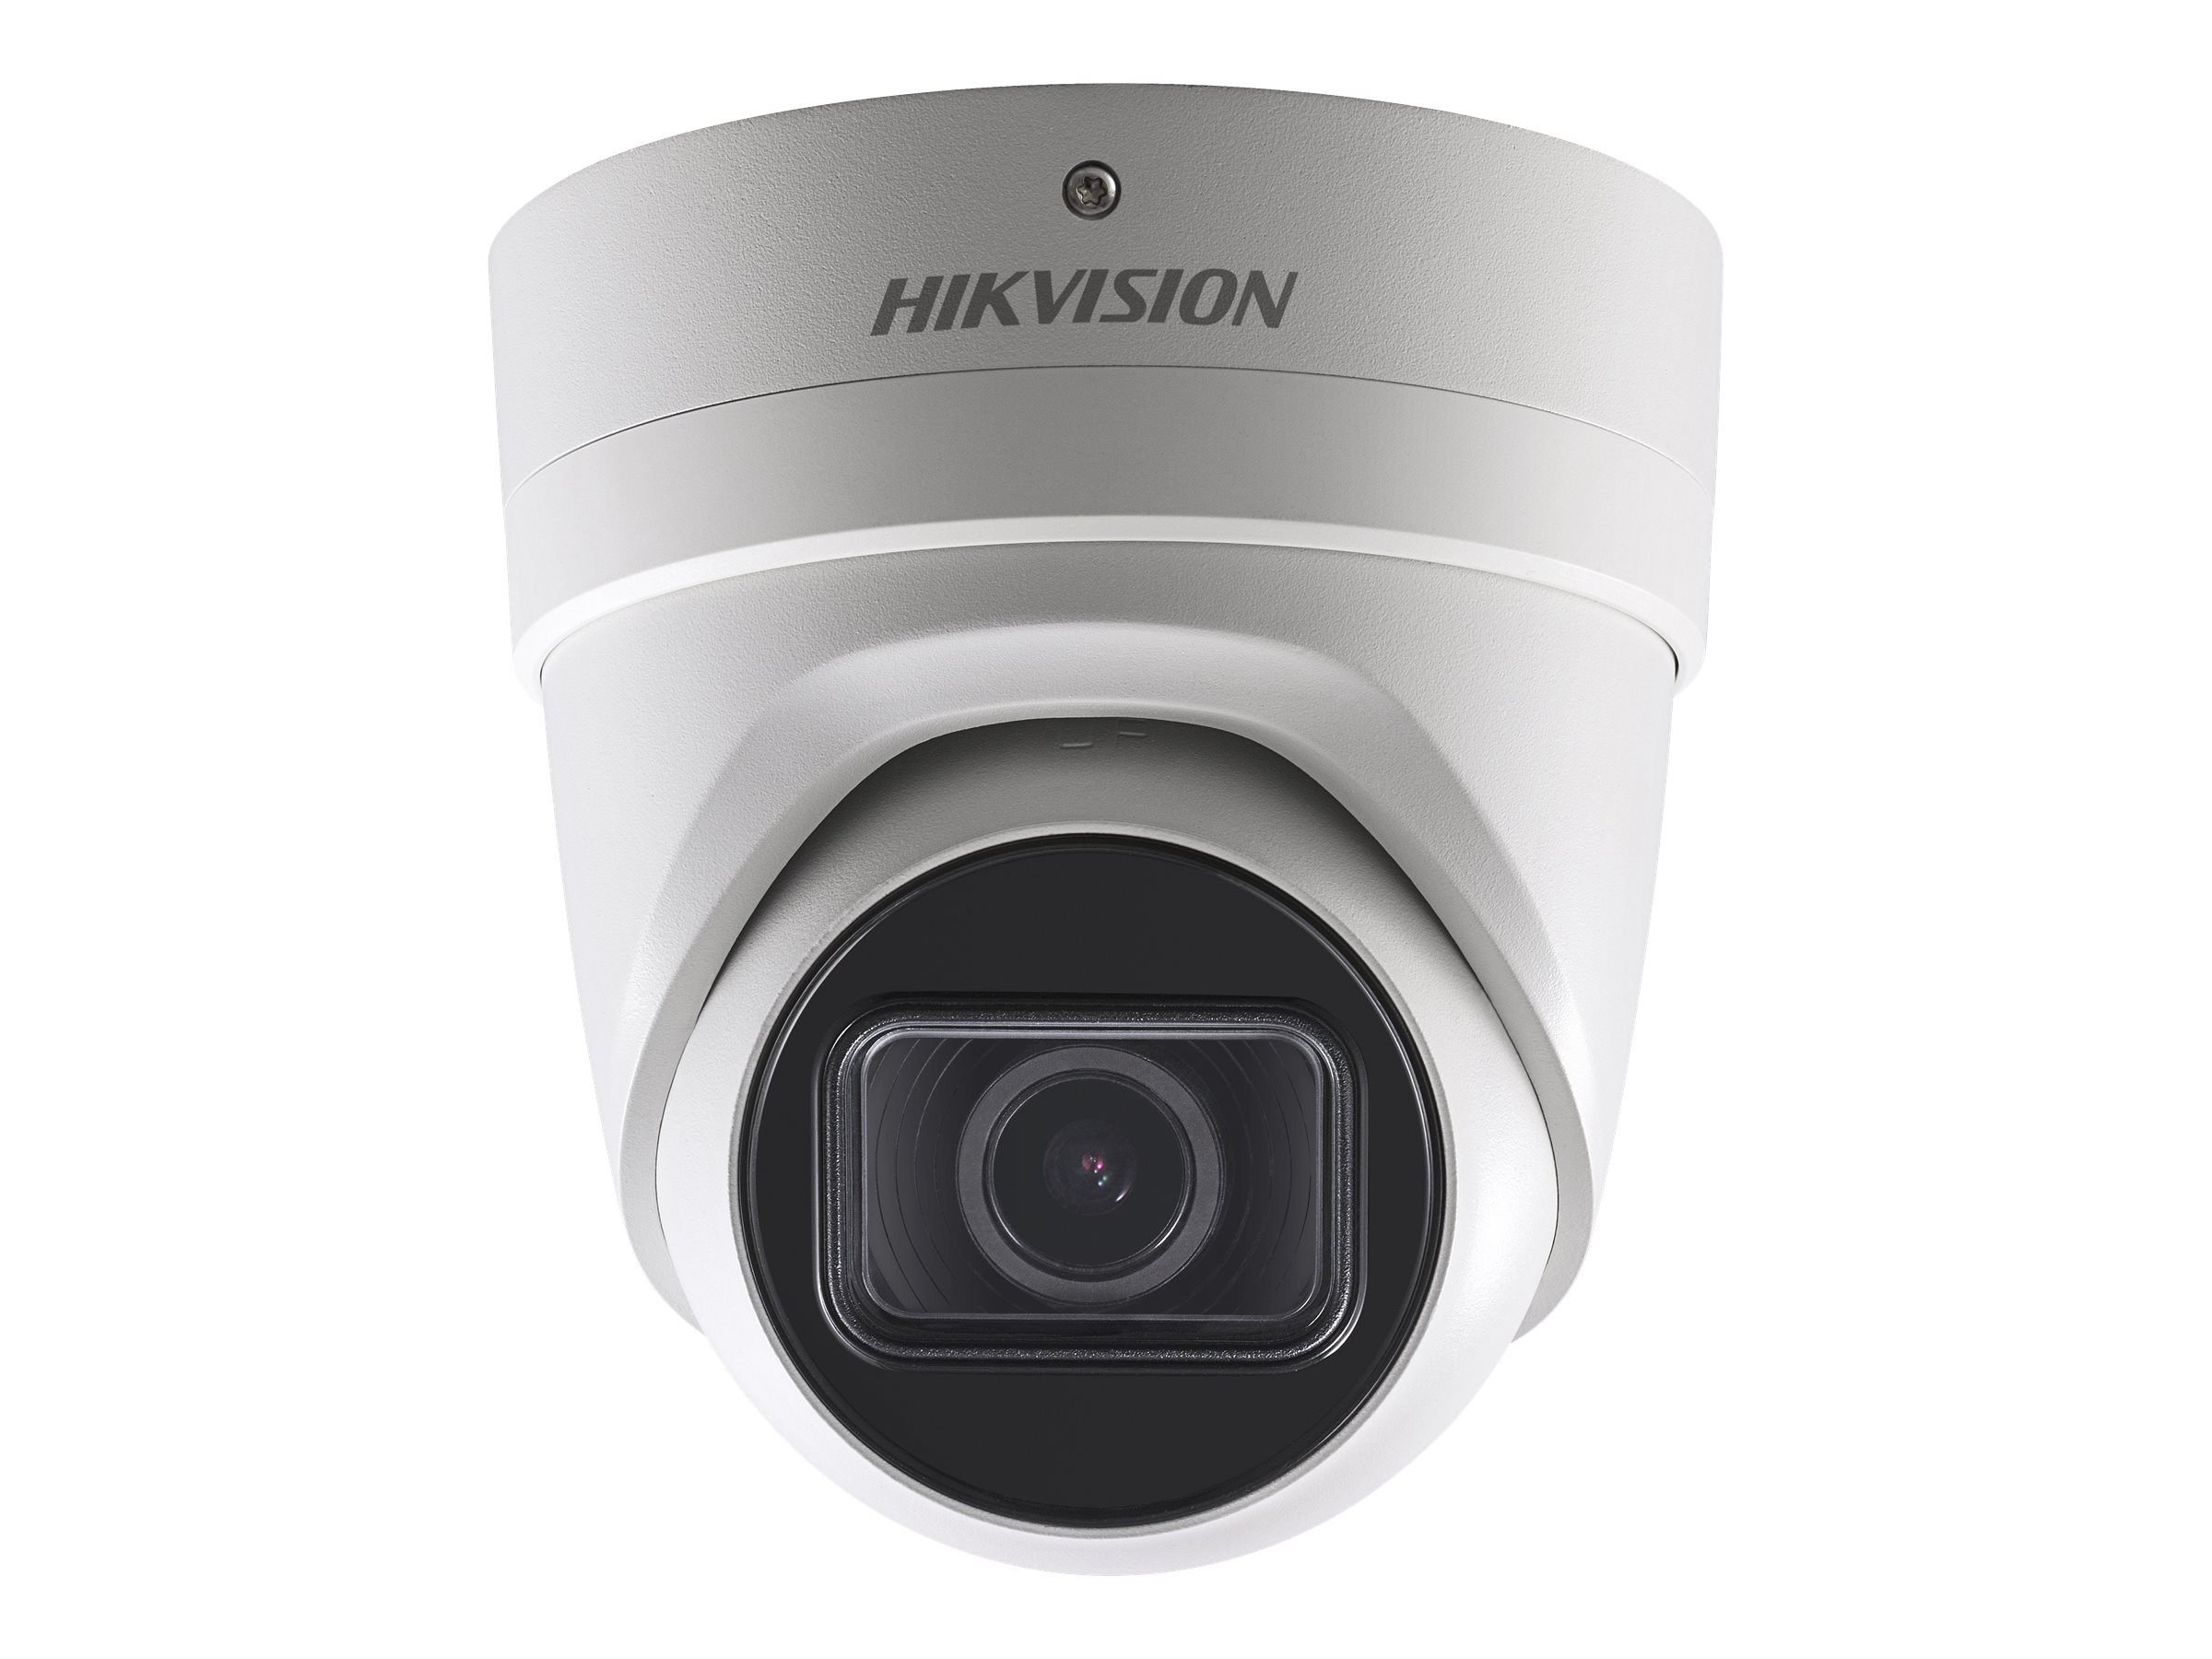 Hikvision EasyIP 3.0 DS-2CD2H45FWD-IZS - network surveillance camera - dome